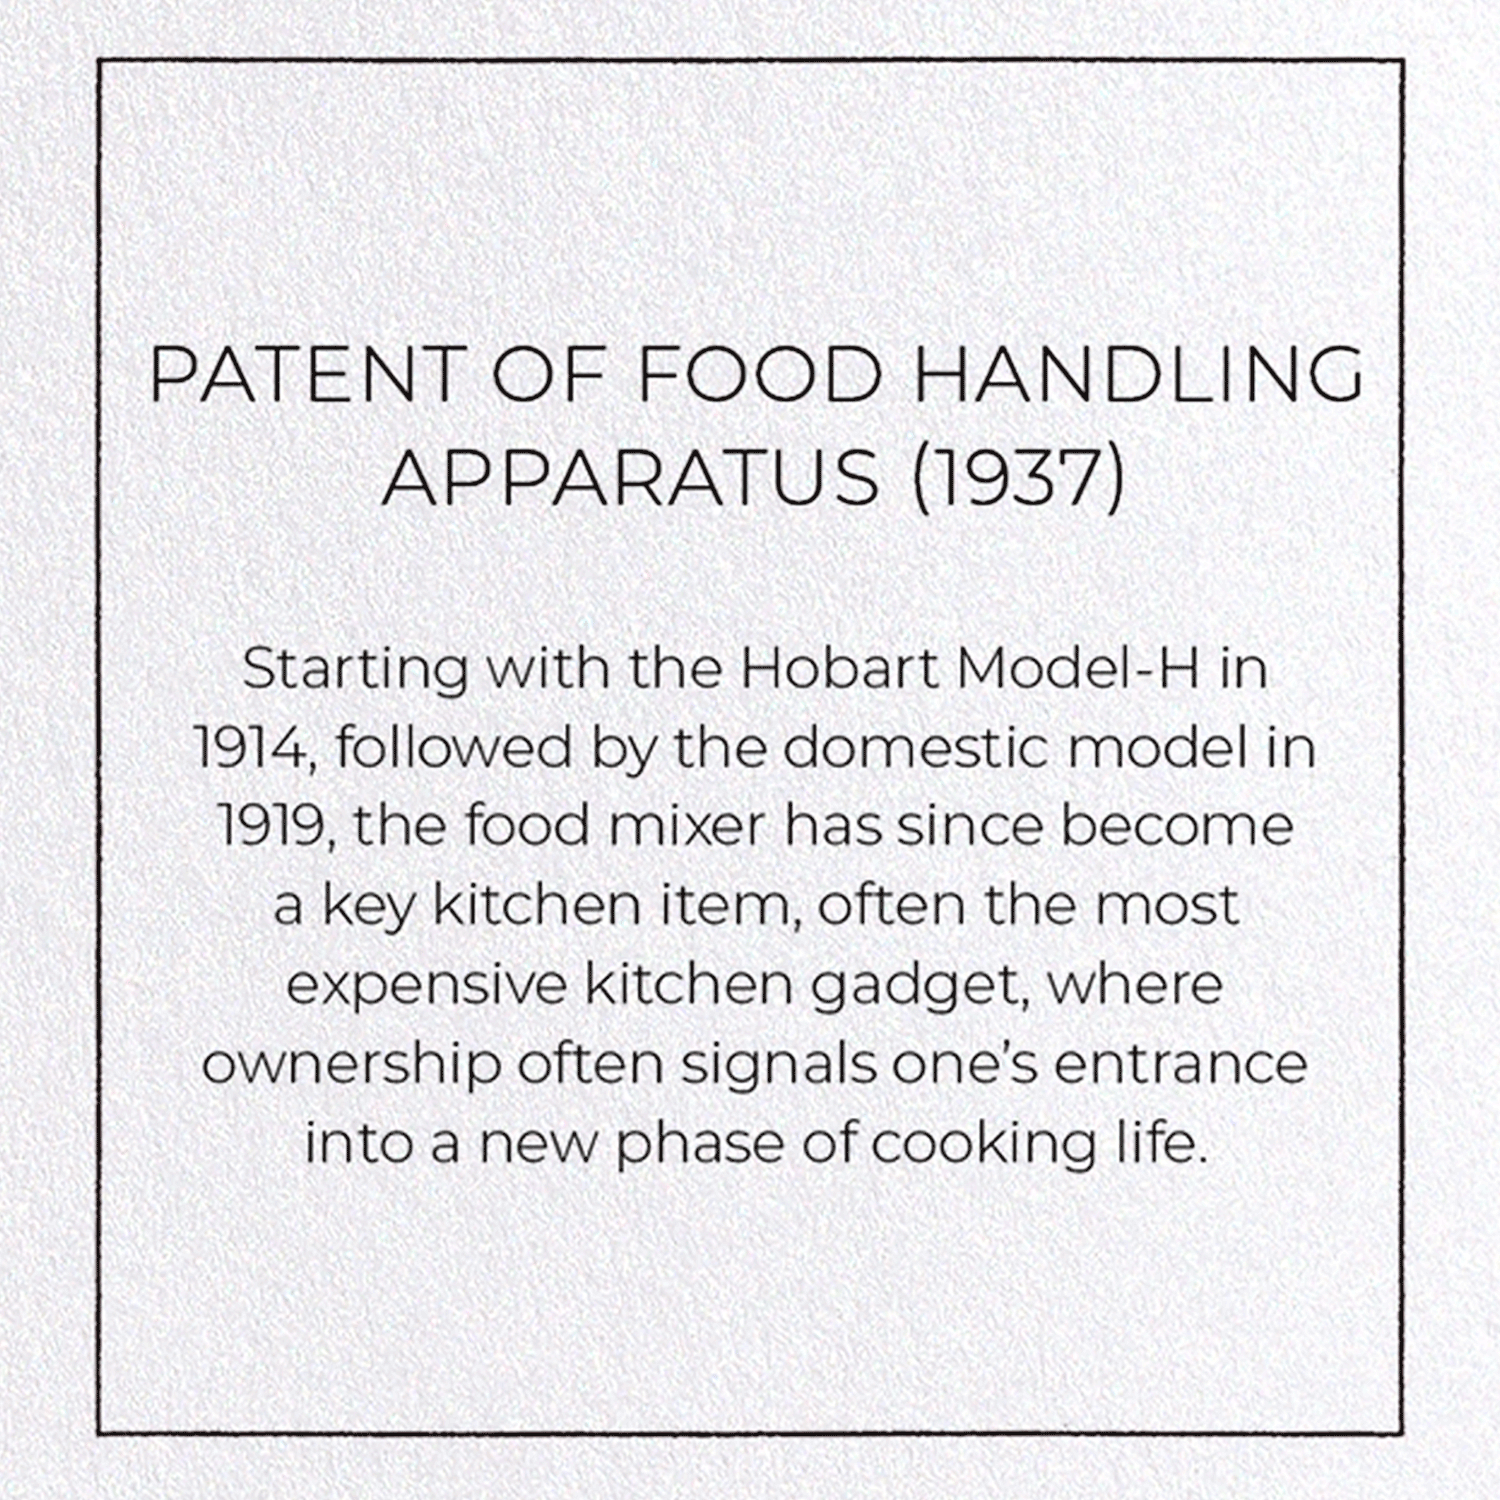 PATENT OF FOOD HANDLING APPARATUS (1937)